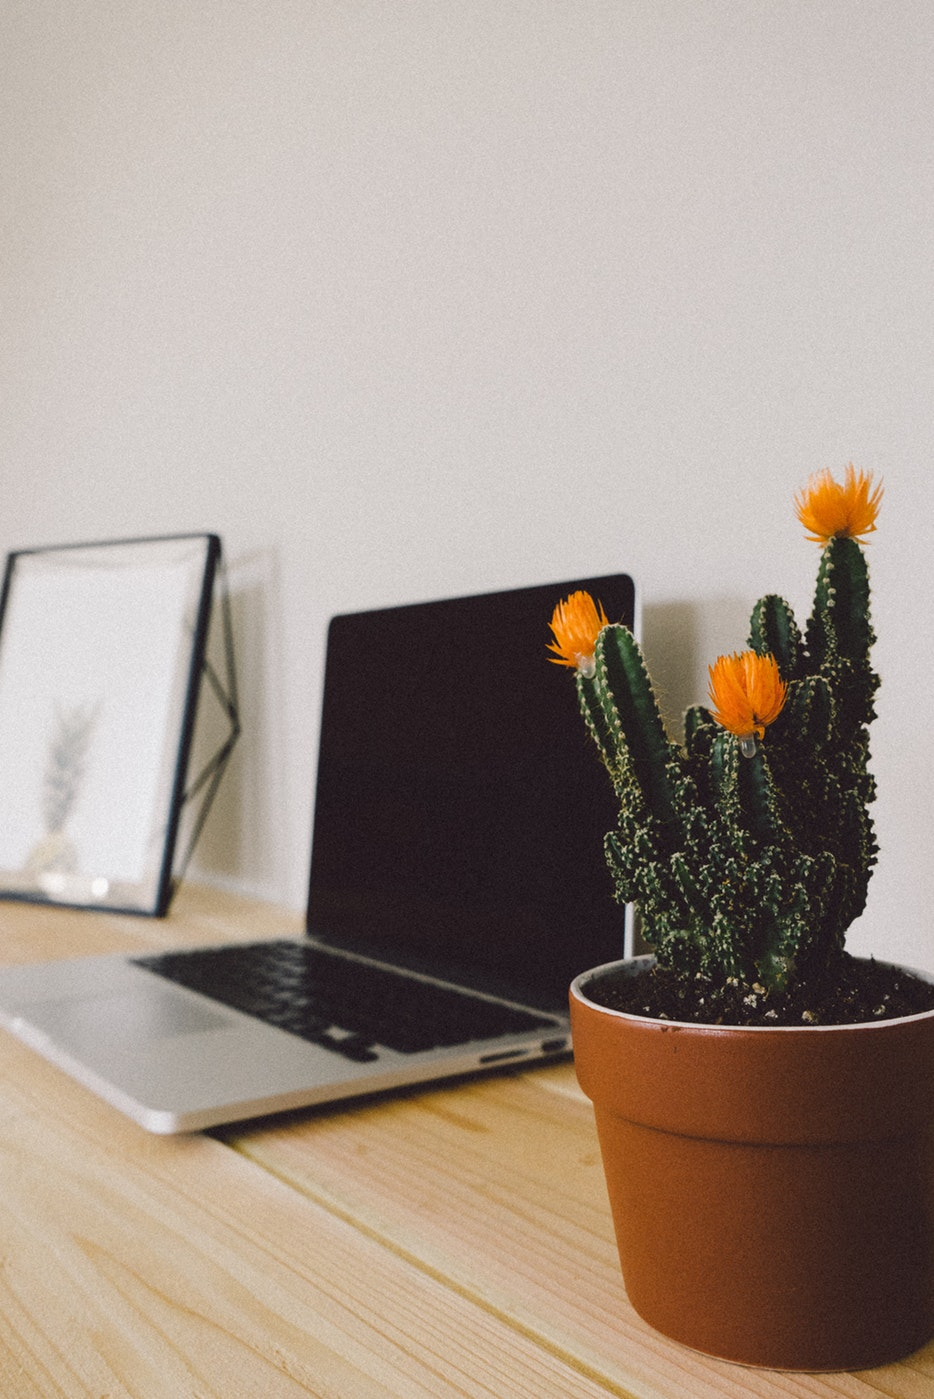 Laptop and cactus